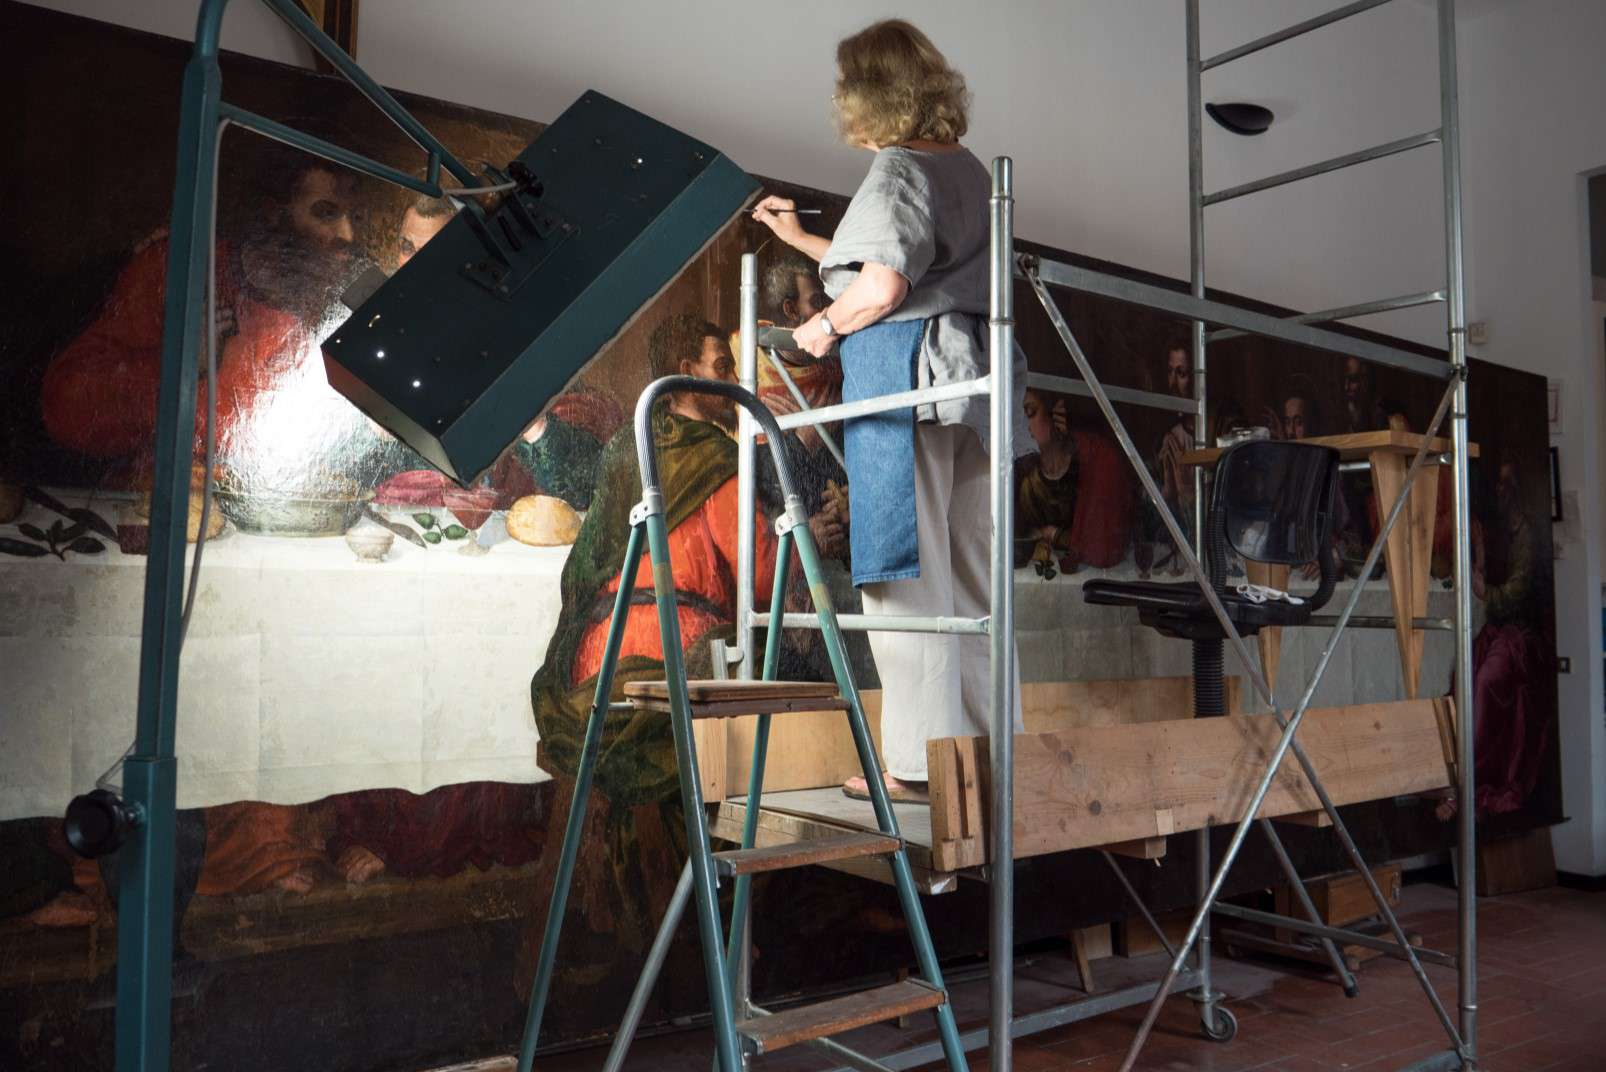 Last Supper by Plautilla Nelli - Adopt an Apostle - Working on scaffolding for the painting's reconstruction